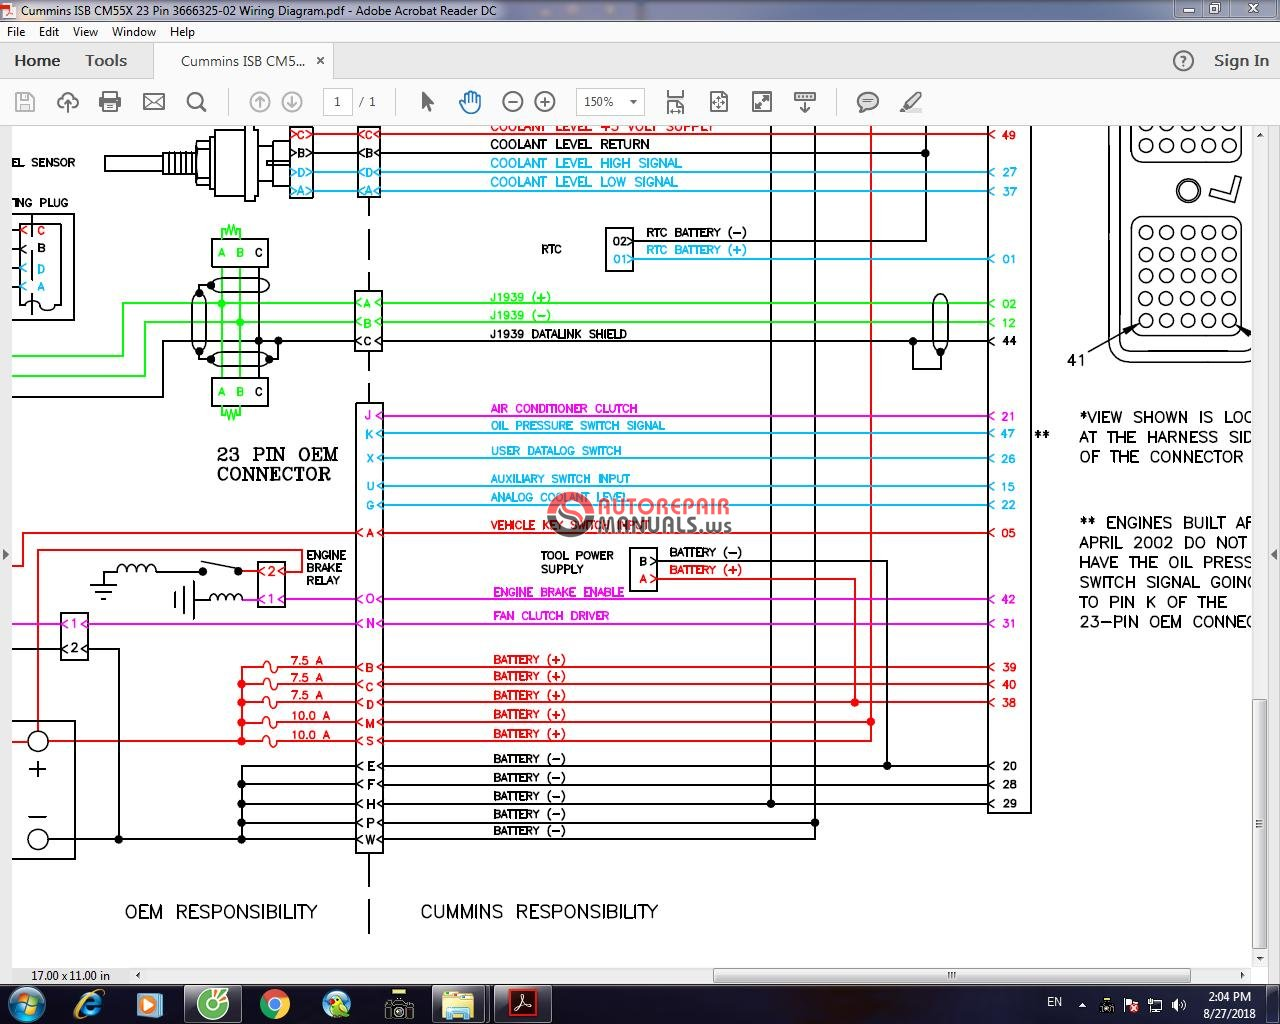 cummins isb cm55x 23 pin 3666325-02 wiring diagram | auto ... isb 23 pin wiring diagram isb 170 hp wiring diagram #3